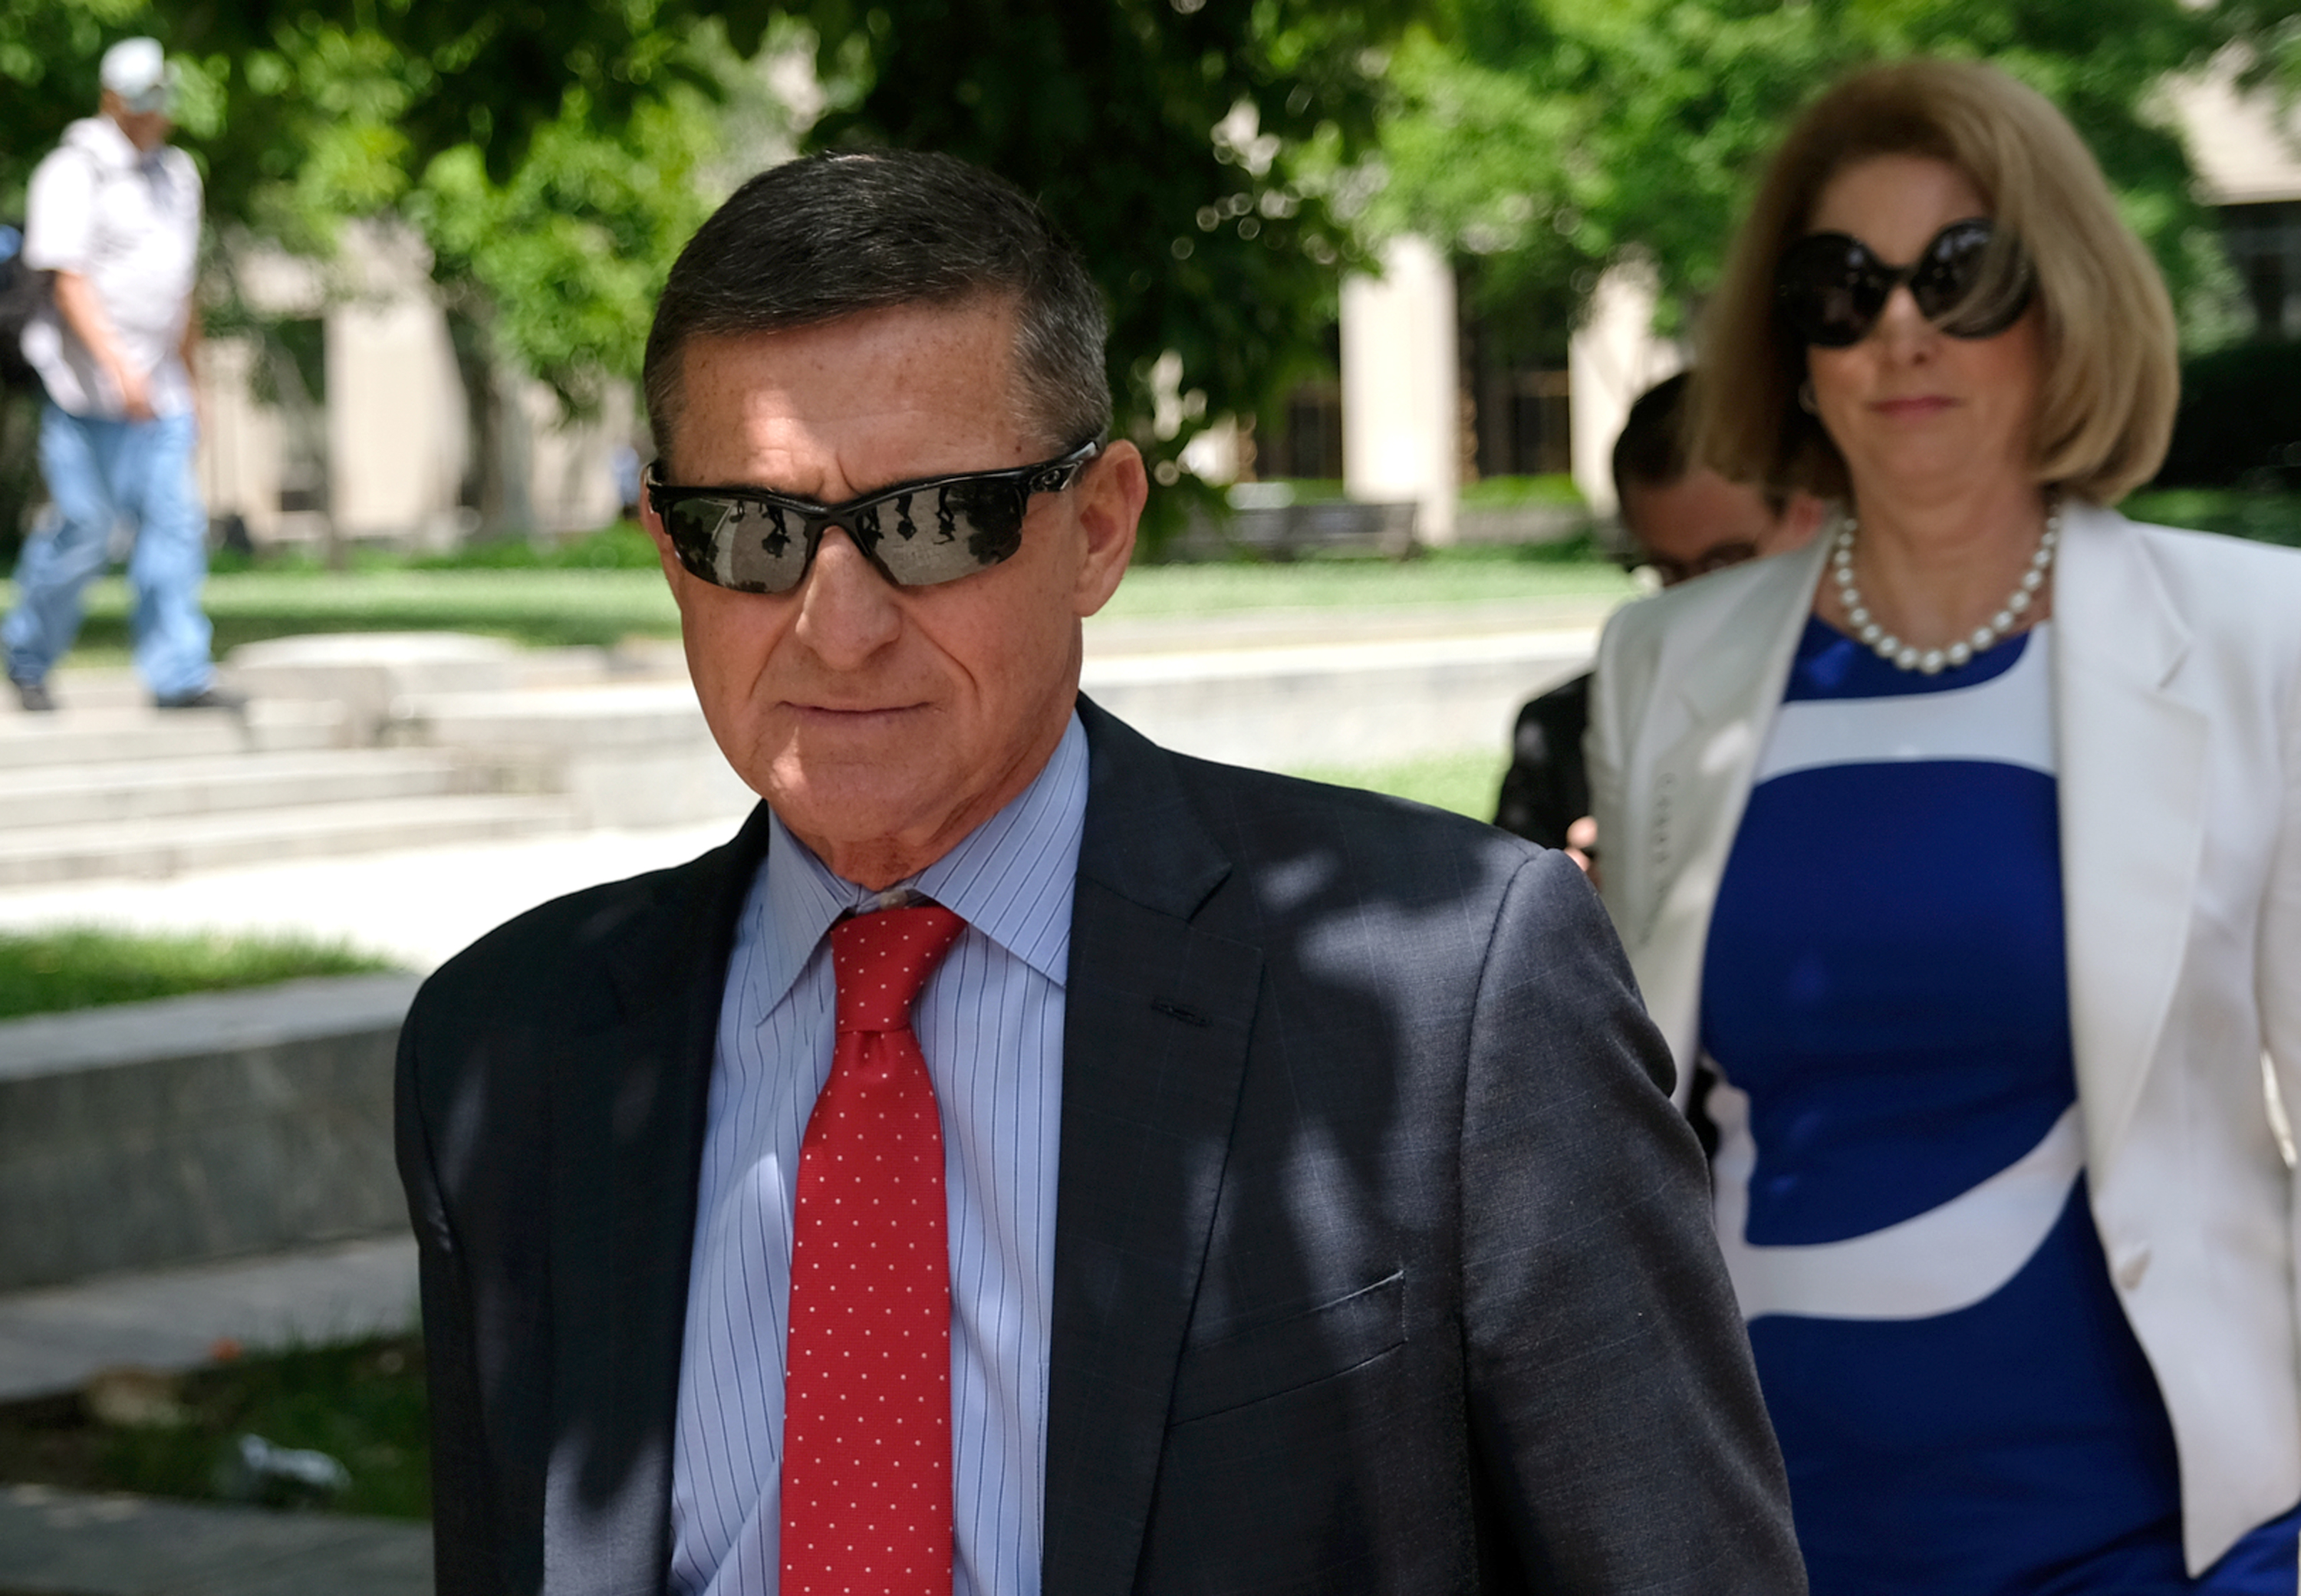 WASHINGTON, DC - JUNE 24: President Donald Trump's former National Security Adviser Michael Flynn leaves the E. Barrett Prettyman U.S. Courthouse on June 24, 2019 in Washington, DC. Criminal sentencing for Flynn will be on hold for at least another two months. (Photo by Alex Wroblewski/Getty Images)